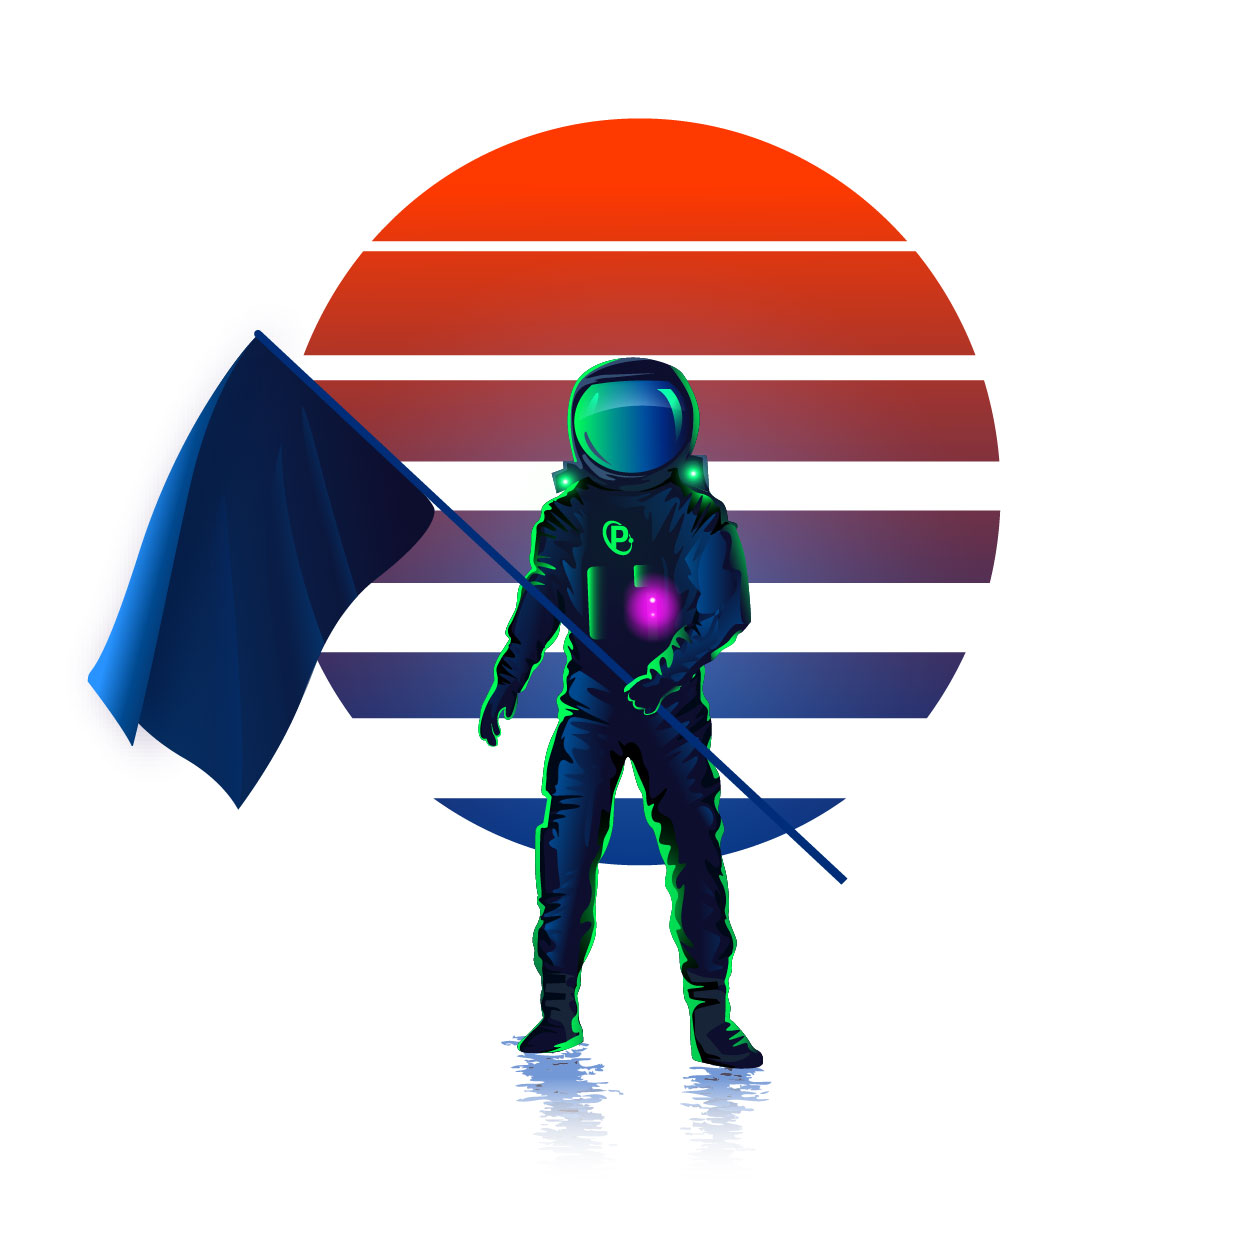 A colorful astronaut holding a blue flag